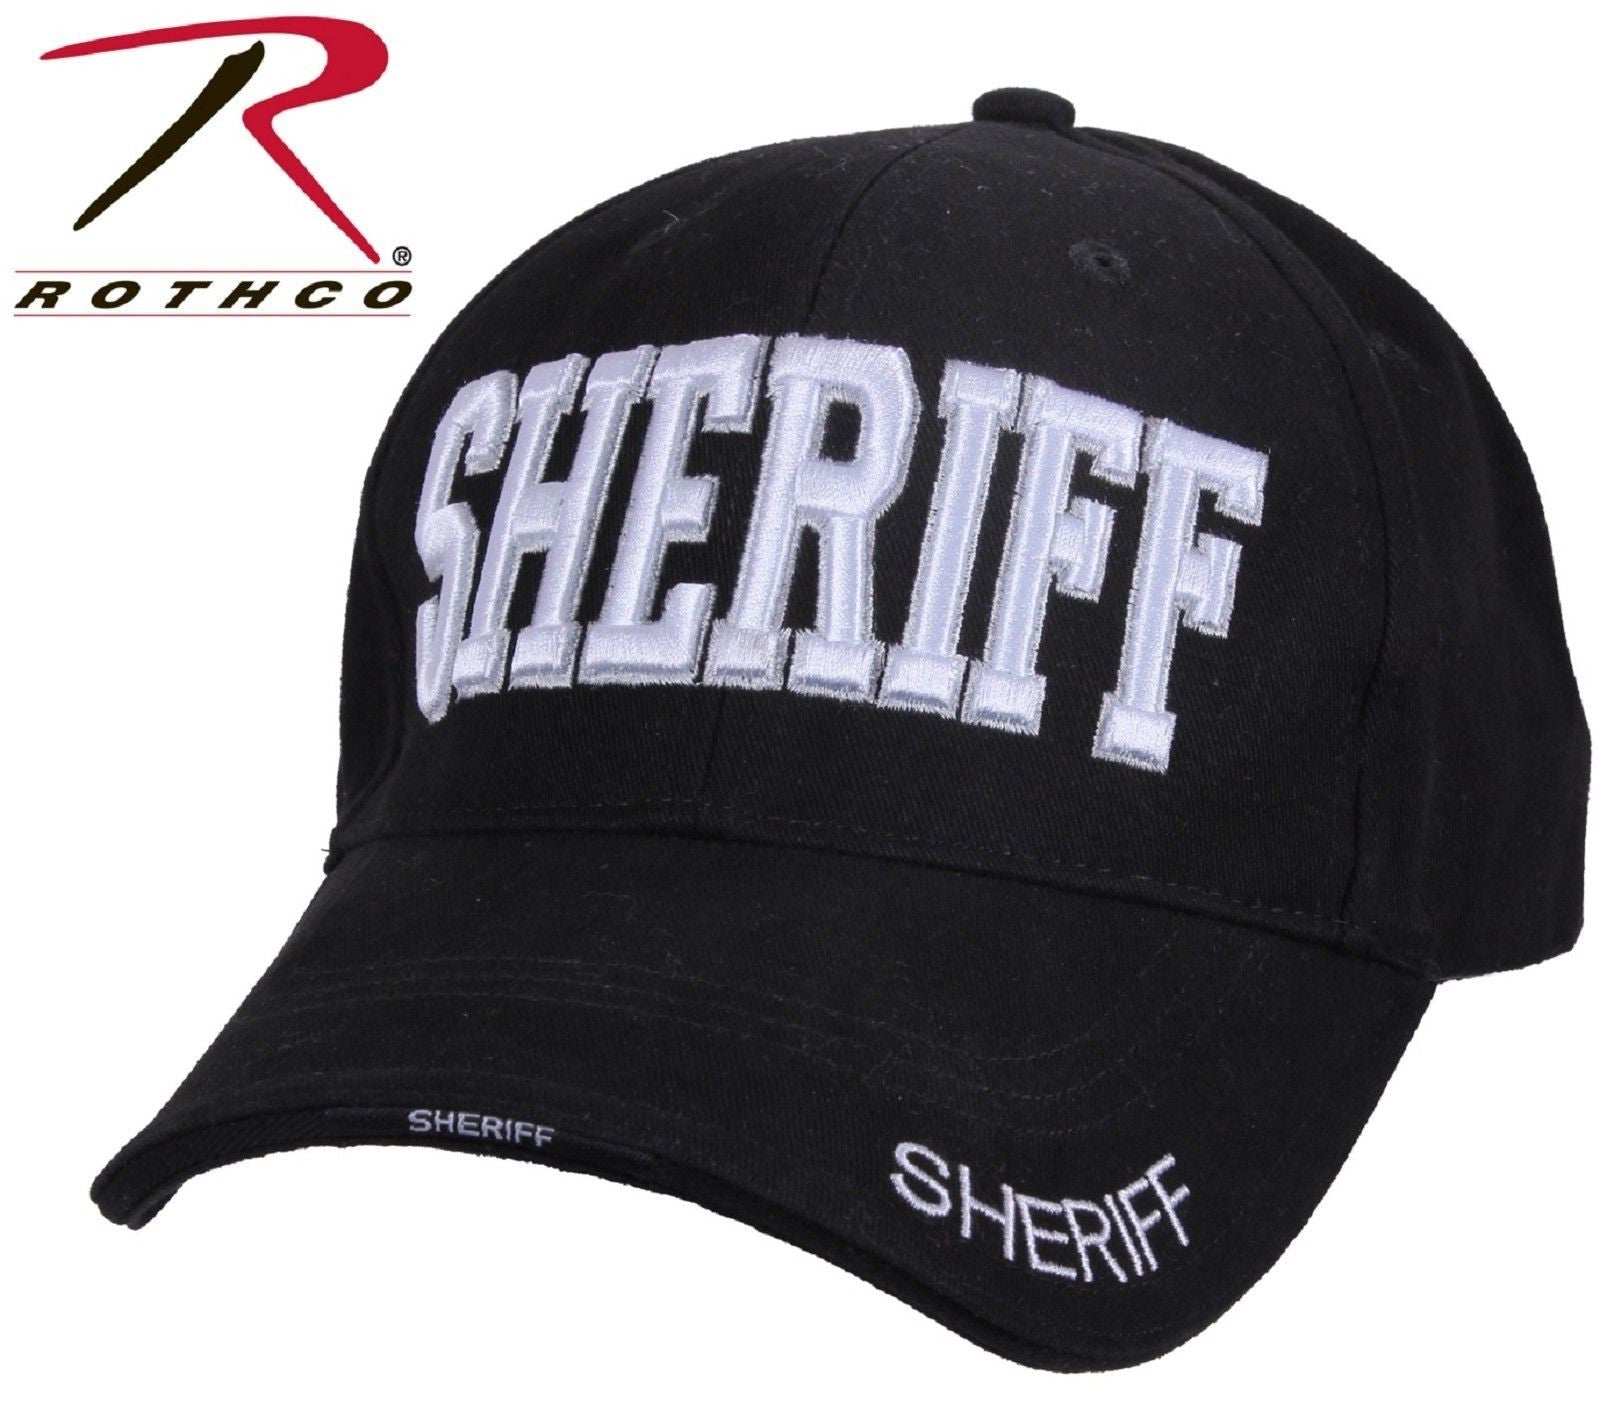 5bdcf65ed74 Black Embroidered SHERIFF Deluxe Low-Profile Baseball Hat - Rothco Police  Cap